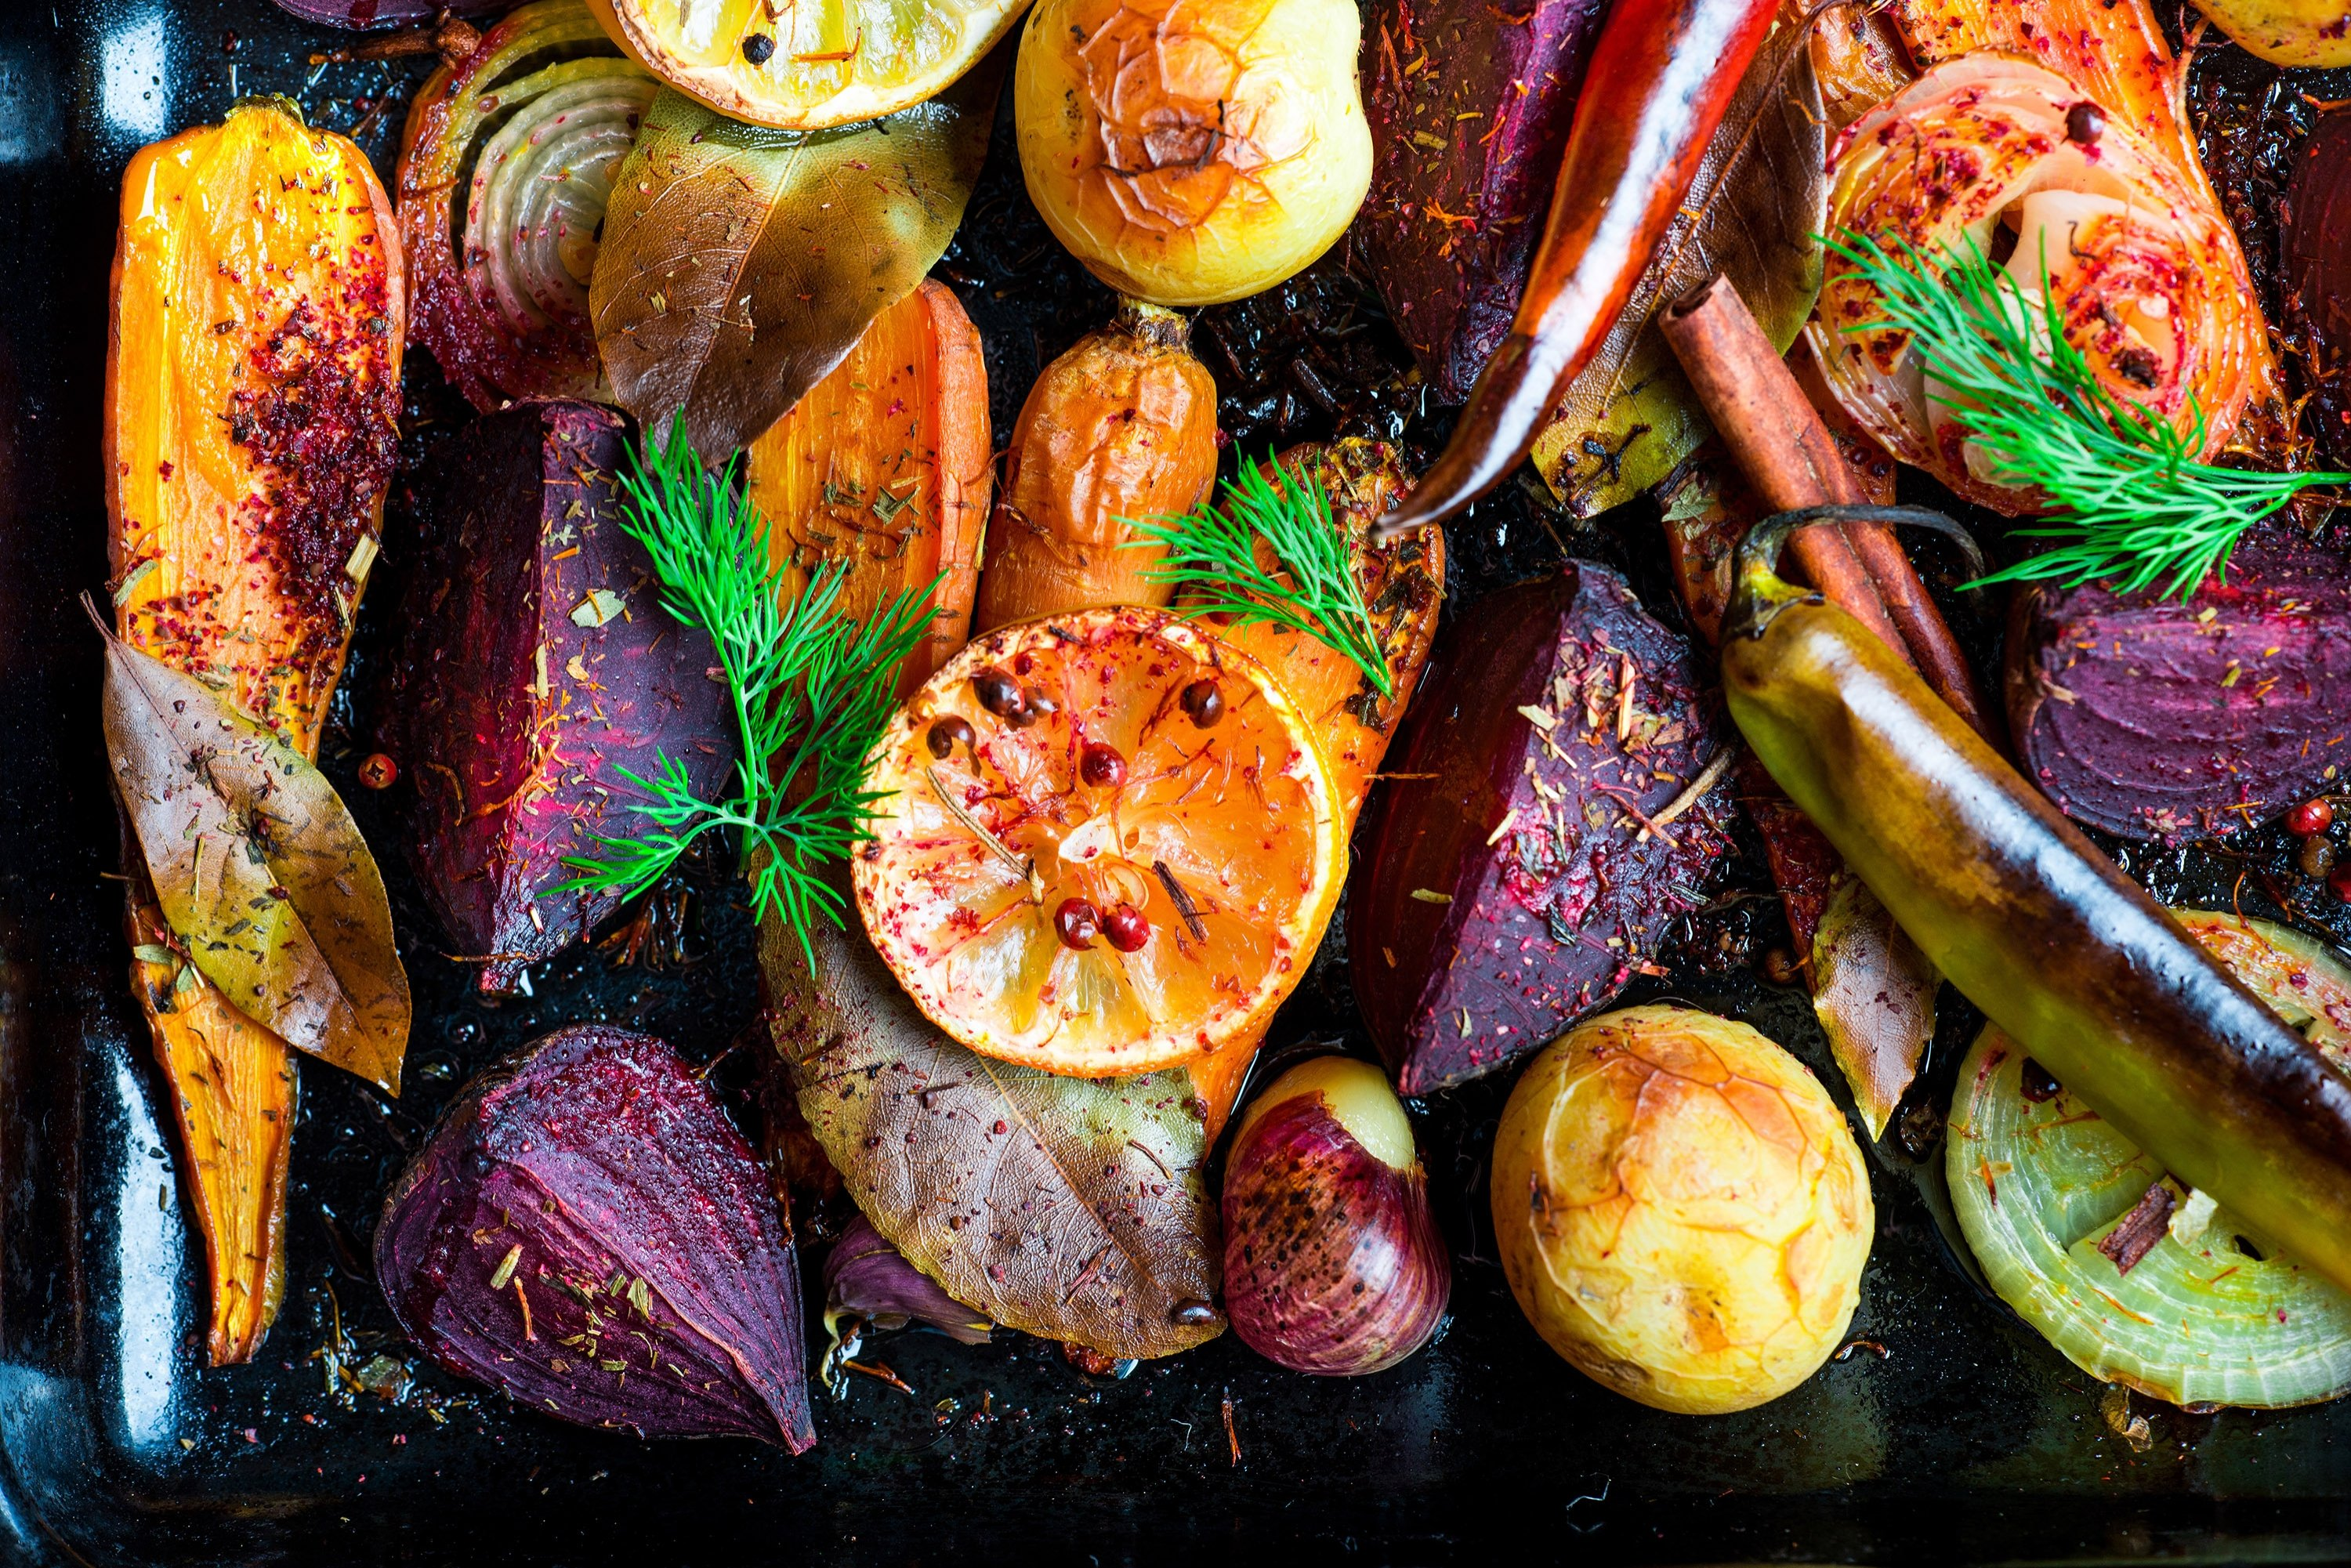 One of the best ways to use fall's colorful vegetables is to bake them in the oven with a bit of olive oil. (Shutterstock Photo)